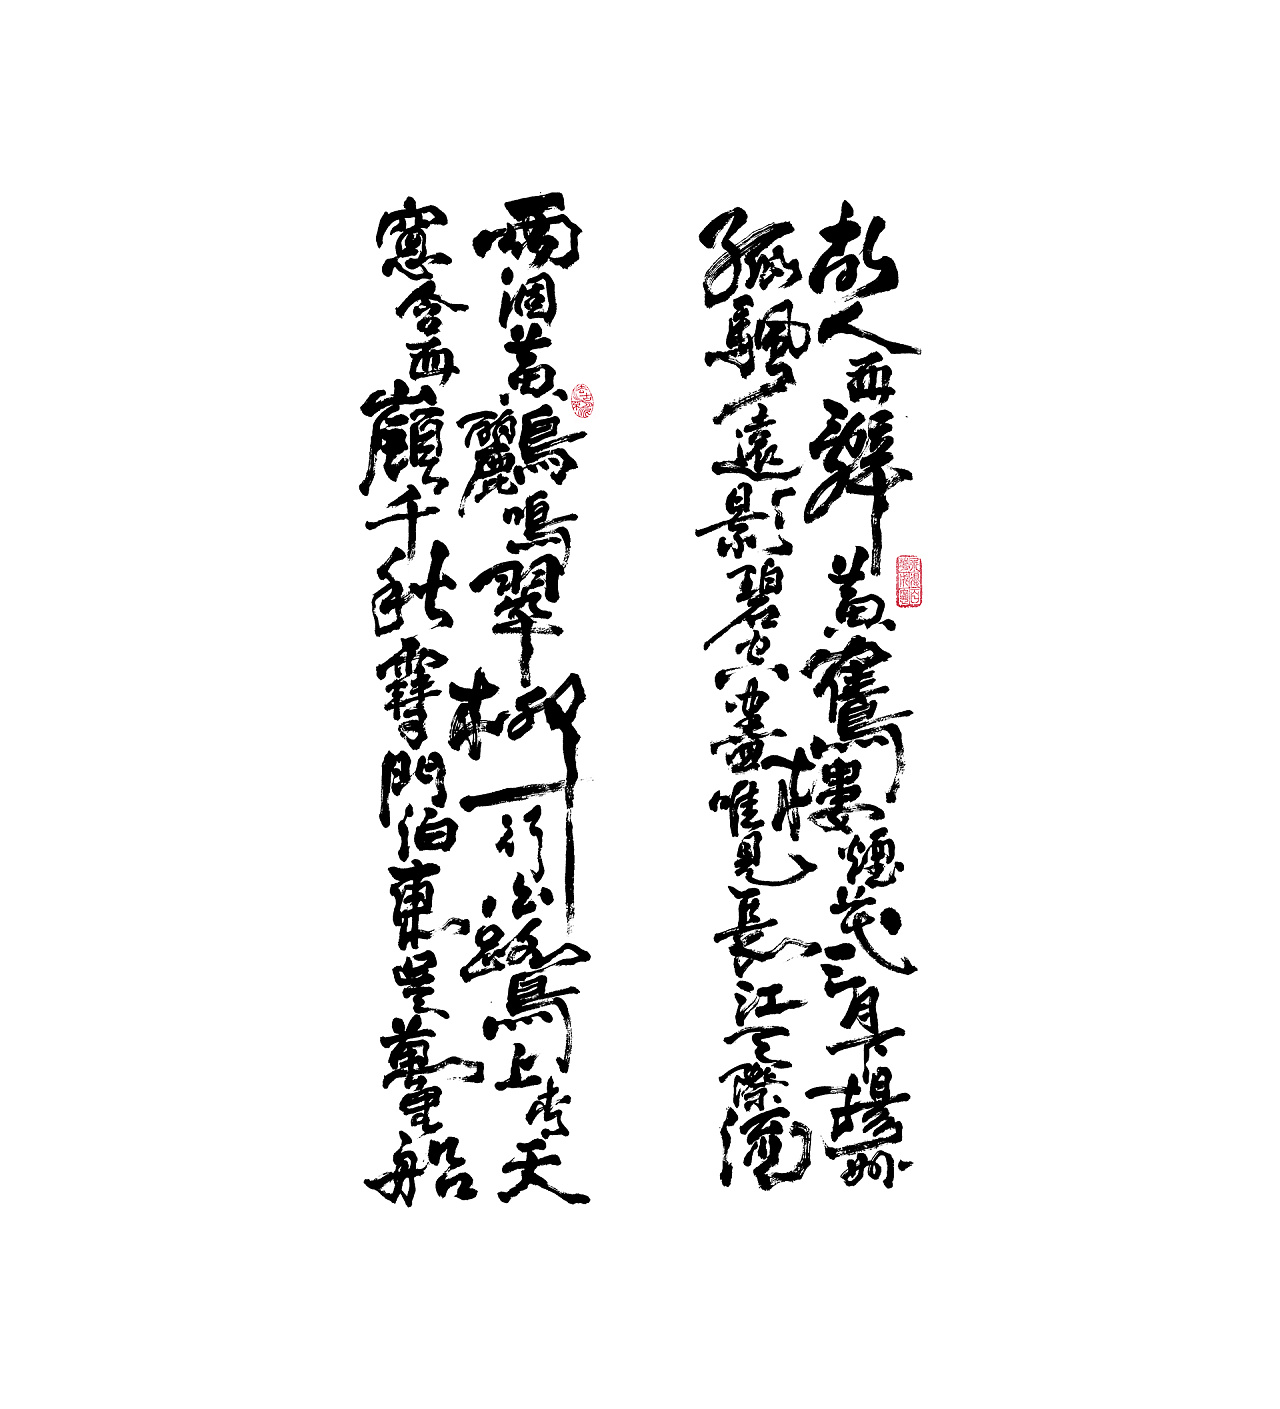 Chinese Creative Font Design-Father's collection of paintings and calligraphy of traditional culture and art